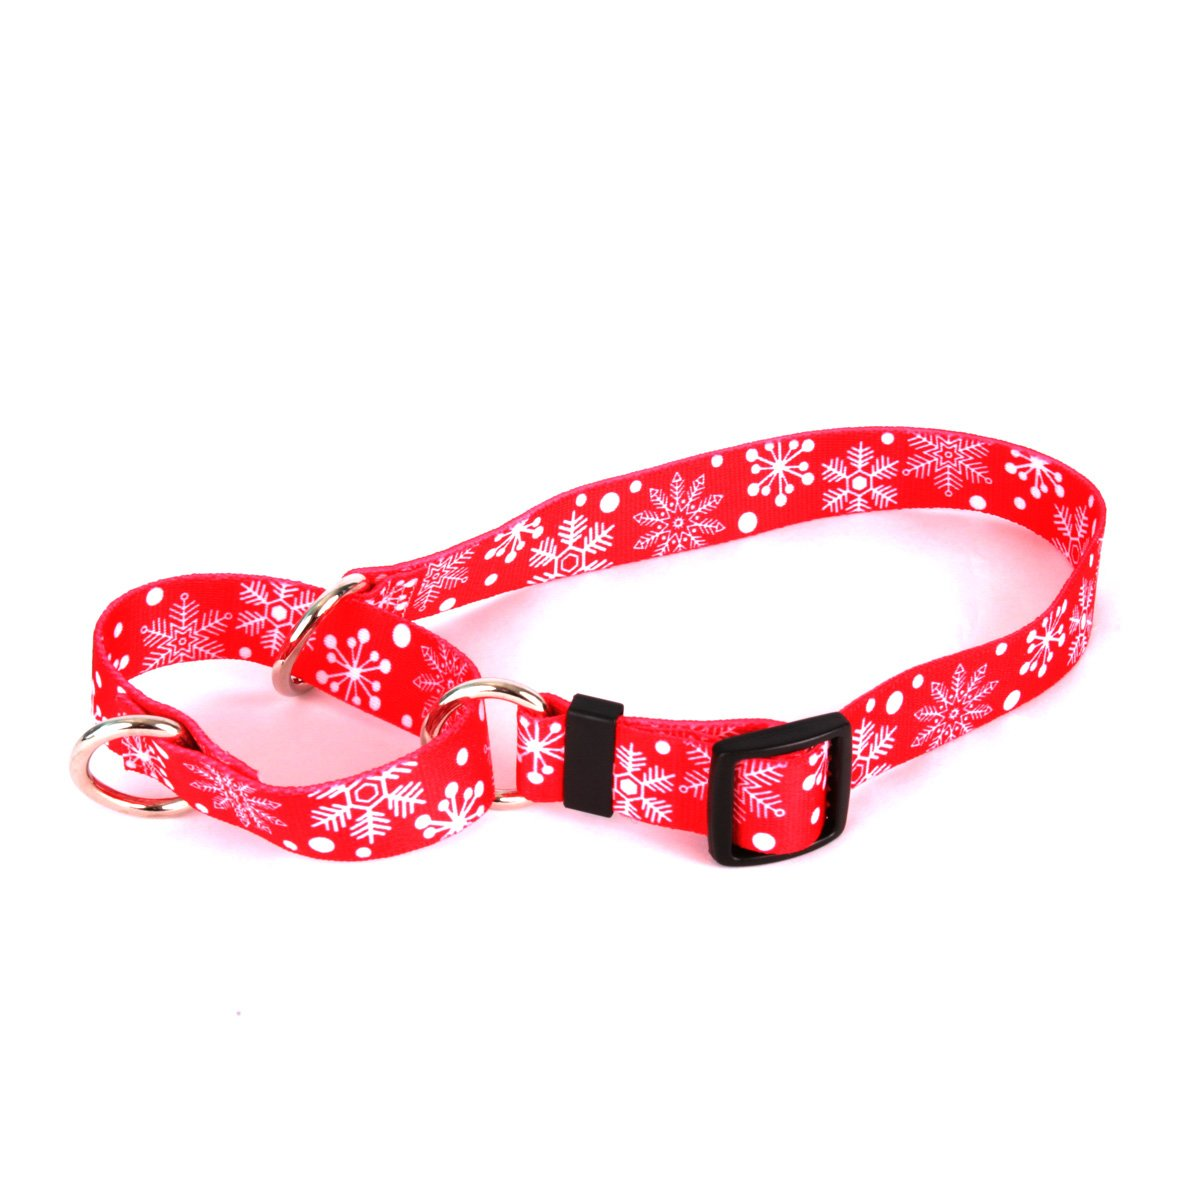 Red Snowflakes Martingale Control Dog Collar Size Large 26  Long Made in The USA